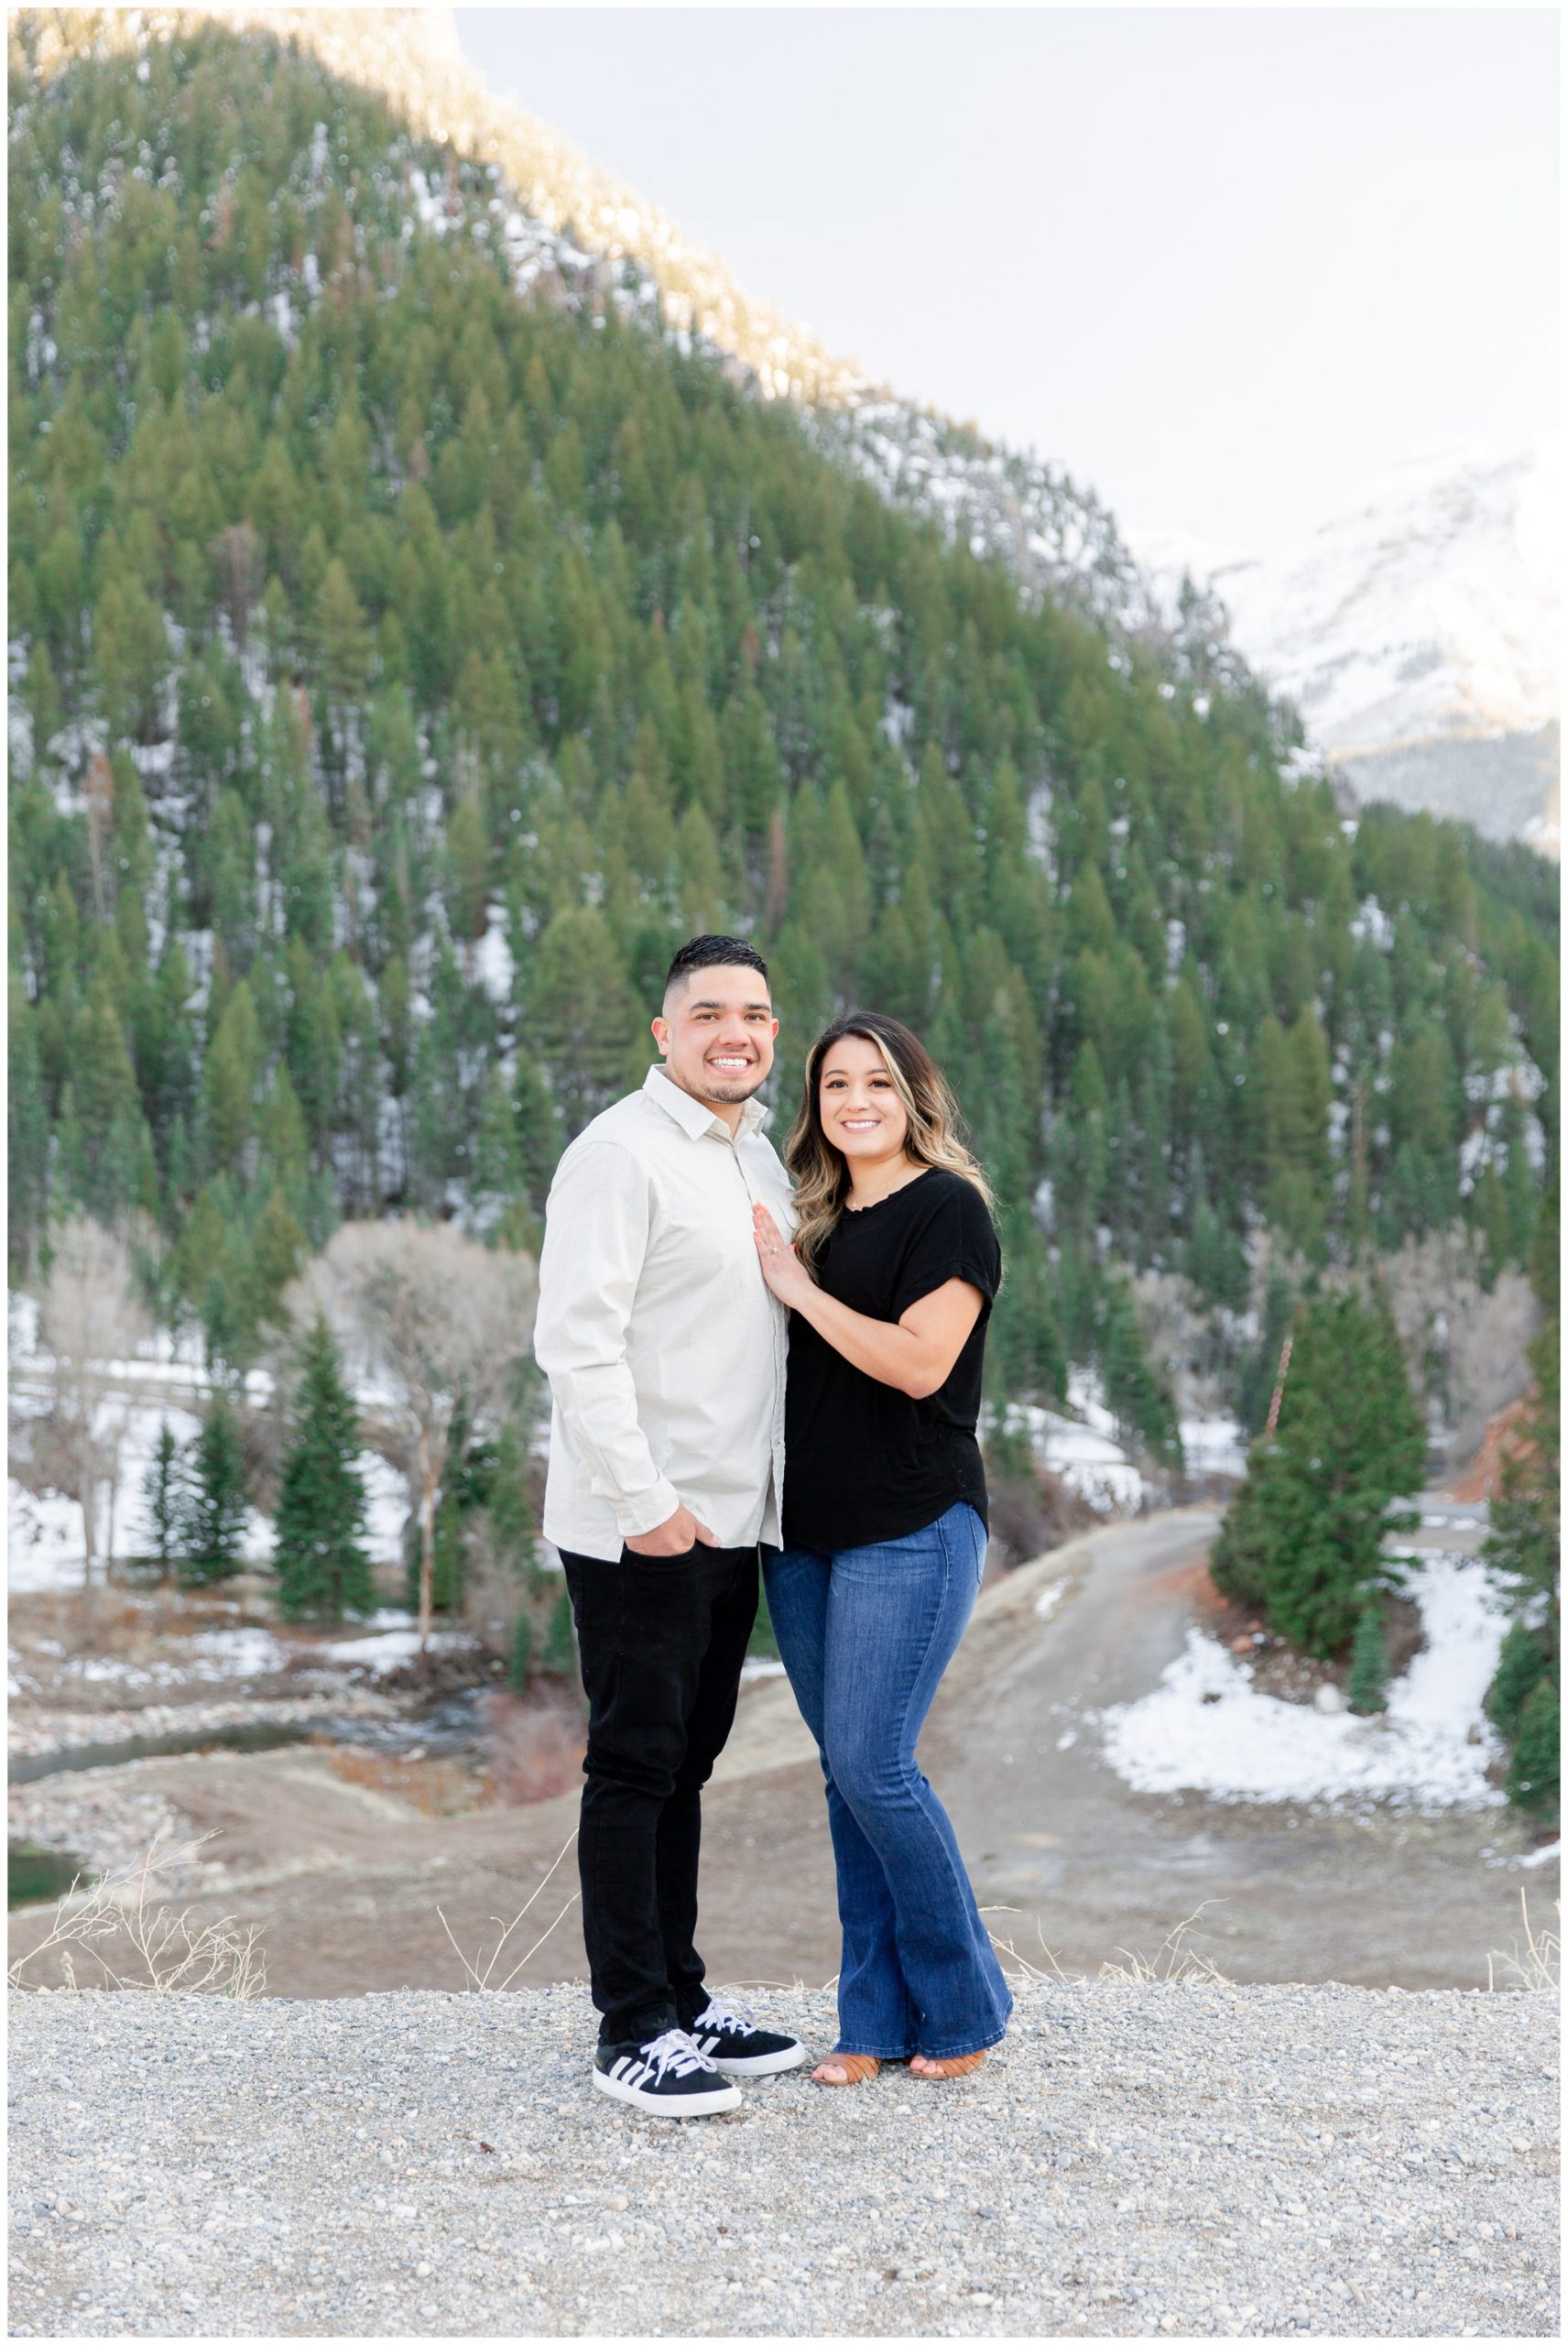 Snowy engagement session in Utah